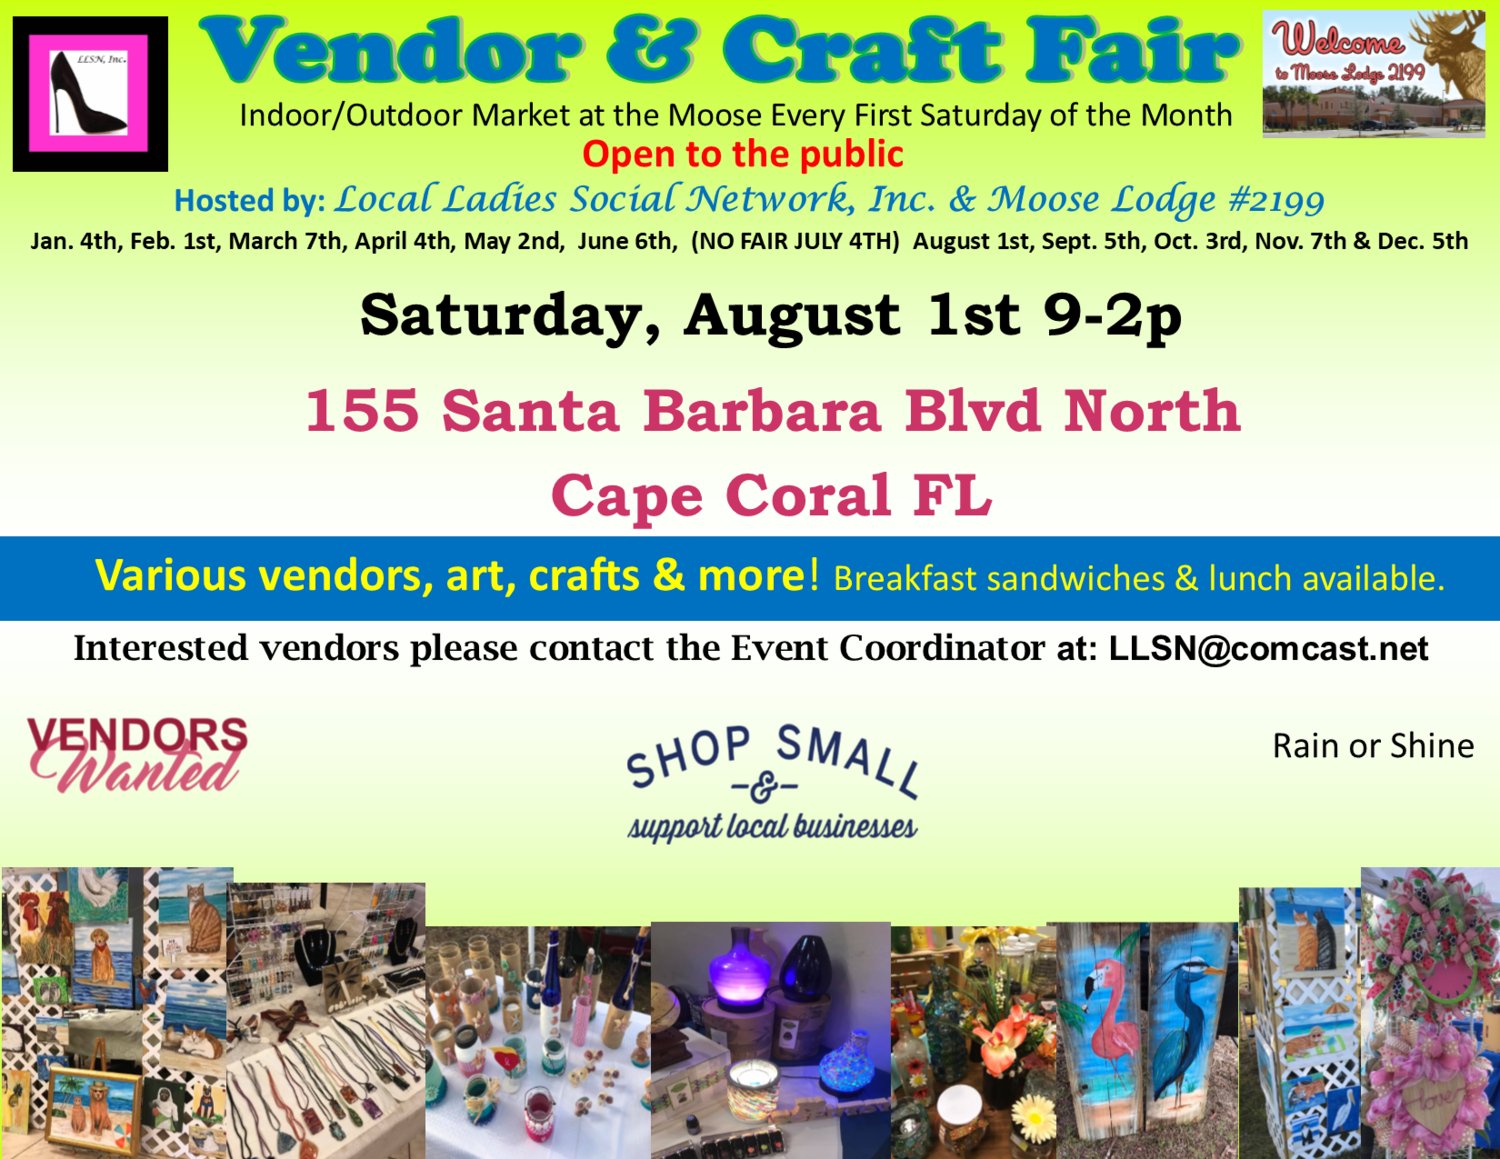 Vendor & Craft Fair- August 1st 2020 INSIDE SPOT- Includes table & chairs